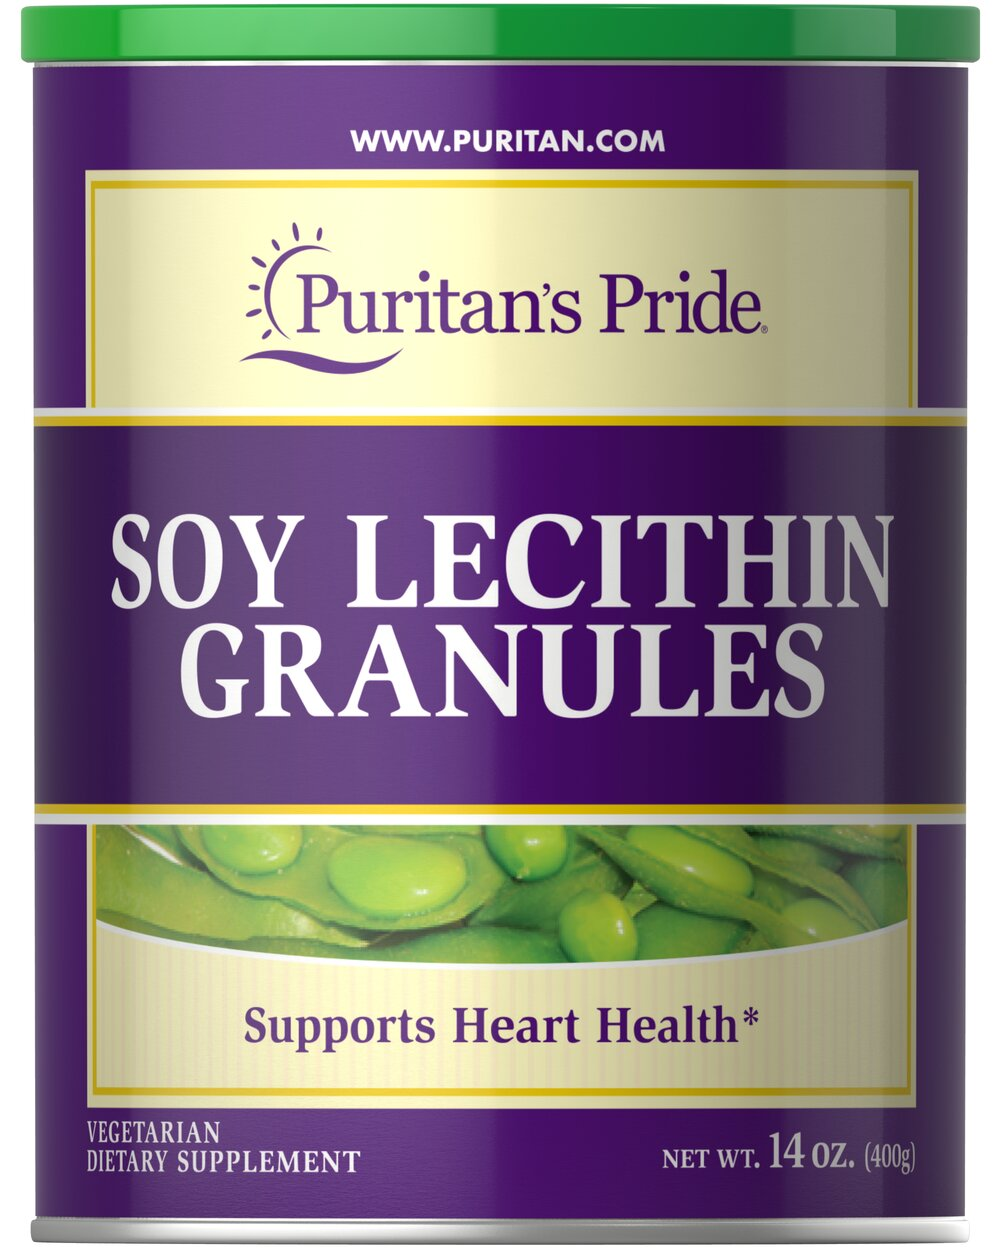 Soy Lecithin Granules 1680 mg <p>95% SOY PHOSPHATIDES </p><p>Finest Quality</p><p>Supports Mental Function & Nerve Cell Health**</p><p>Lecithin is an important natural source of choline, inositol, and linoleic acid. Choline and Inositol are vital components of all cell membranes, and play important roles in cell growth and function.**</p> 14 oz Granules 1680 mg $17.99